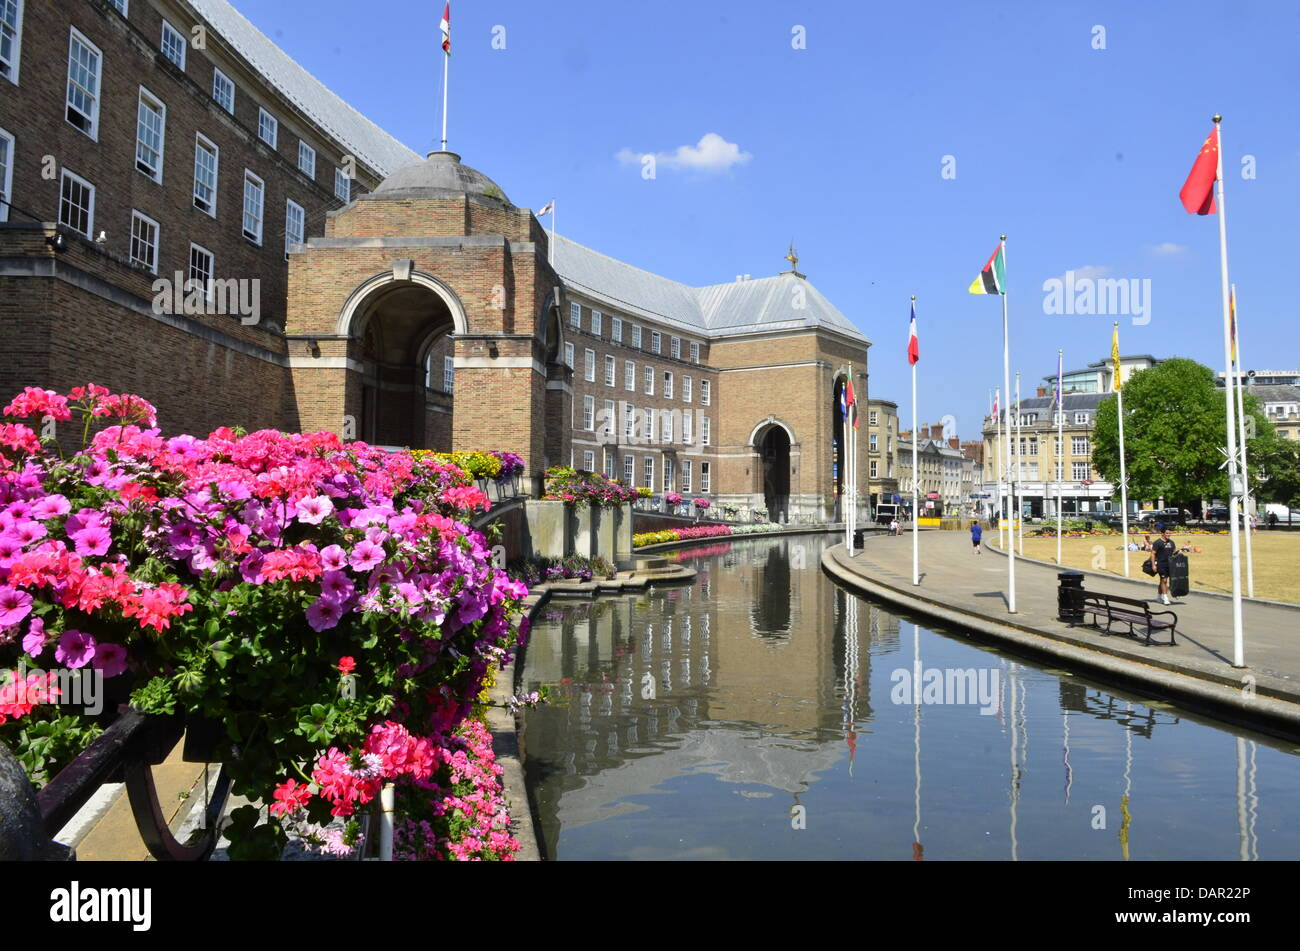 City Hall Bristol in the UK - Stock Image